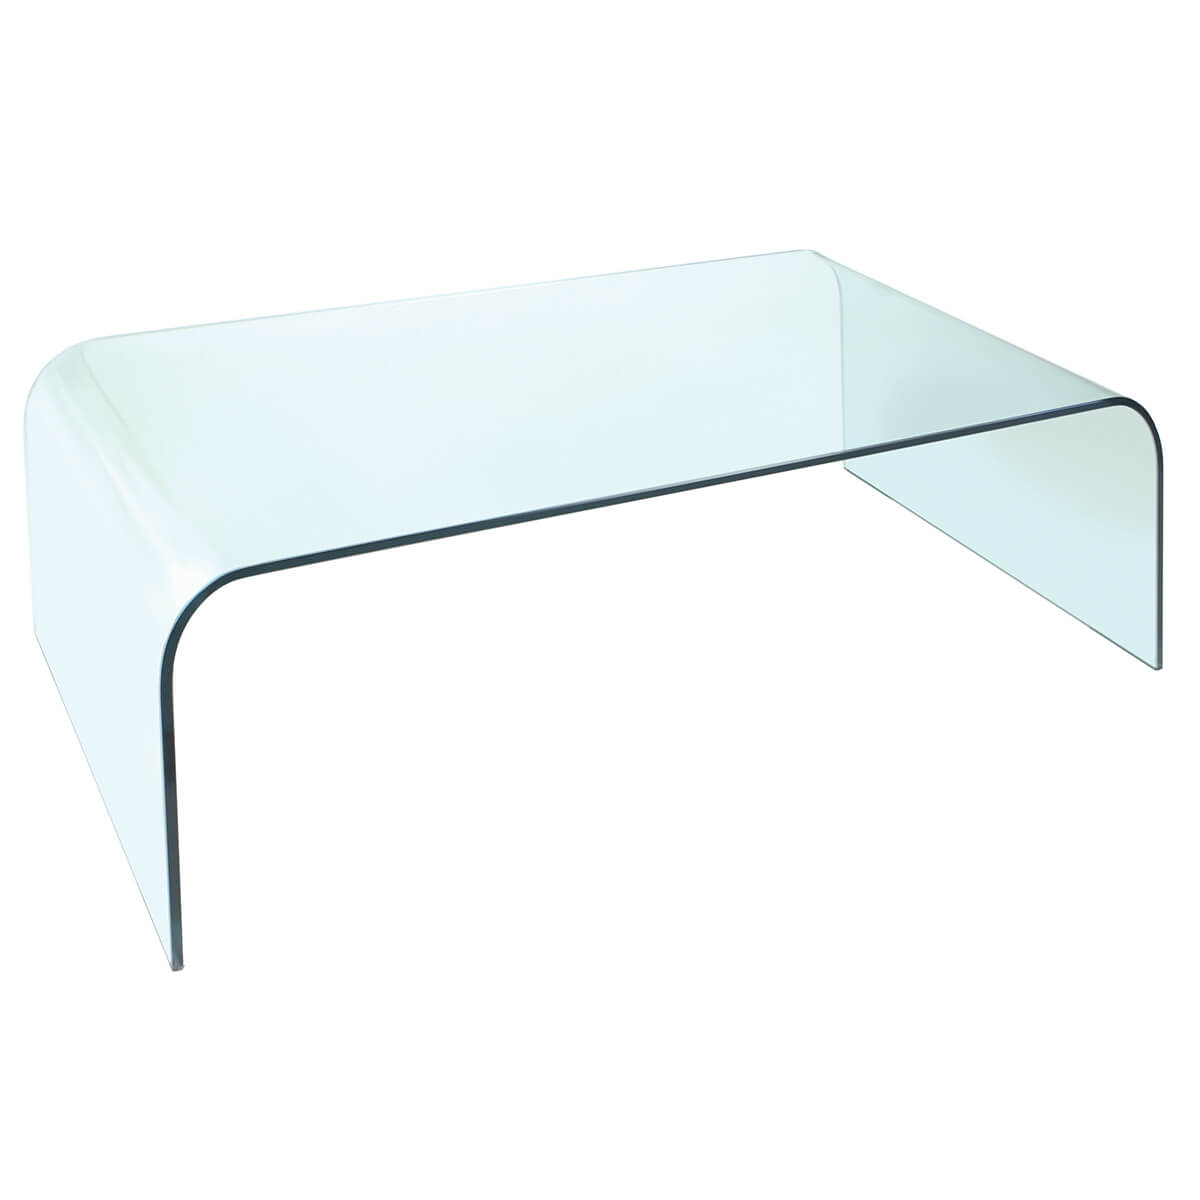 Dome Curved Glass Coffee Table Modern Glass Furniture Fads [ 1200 x 1200 Pixel ]